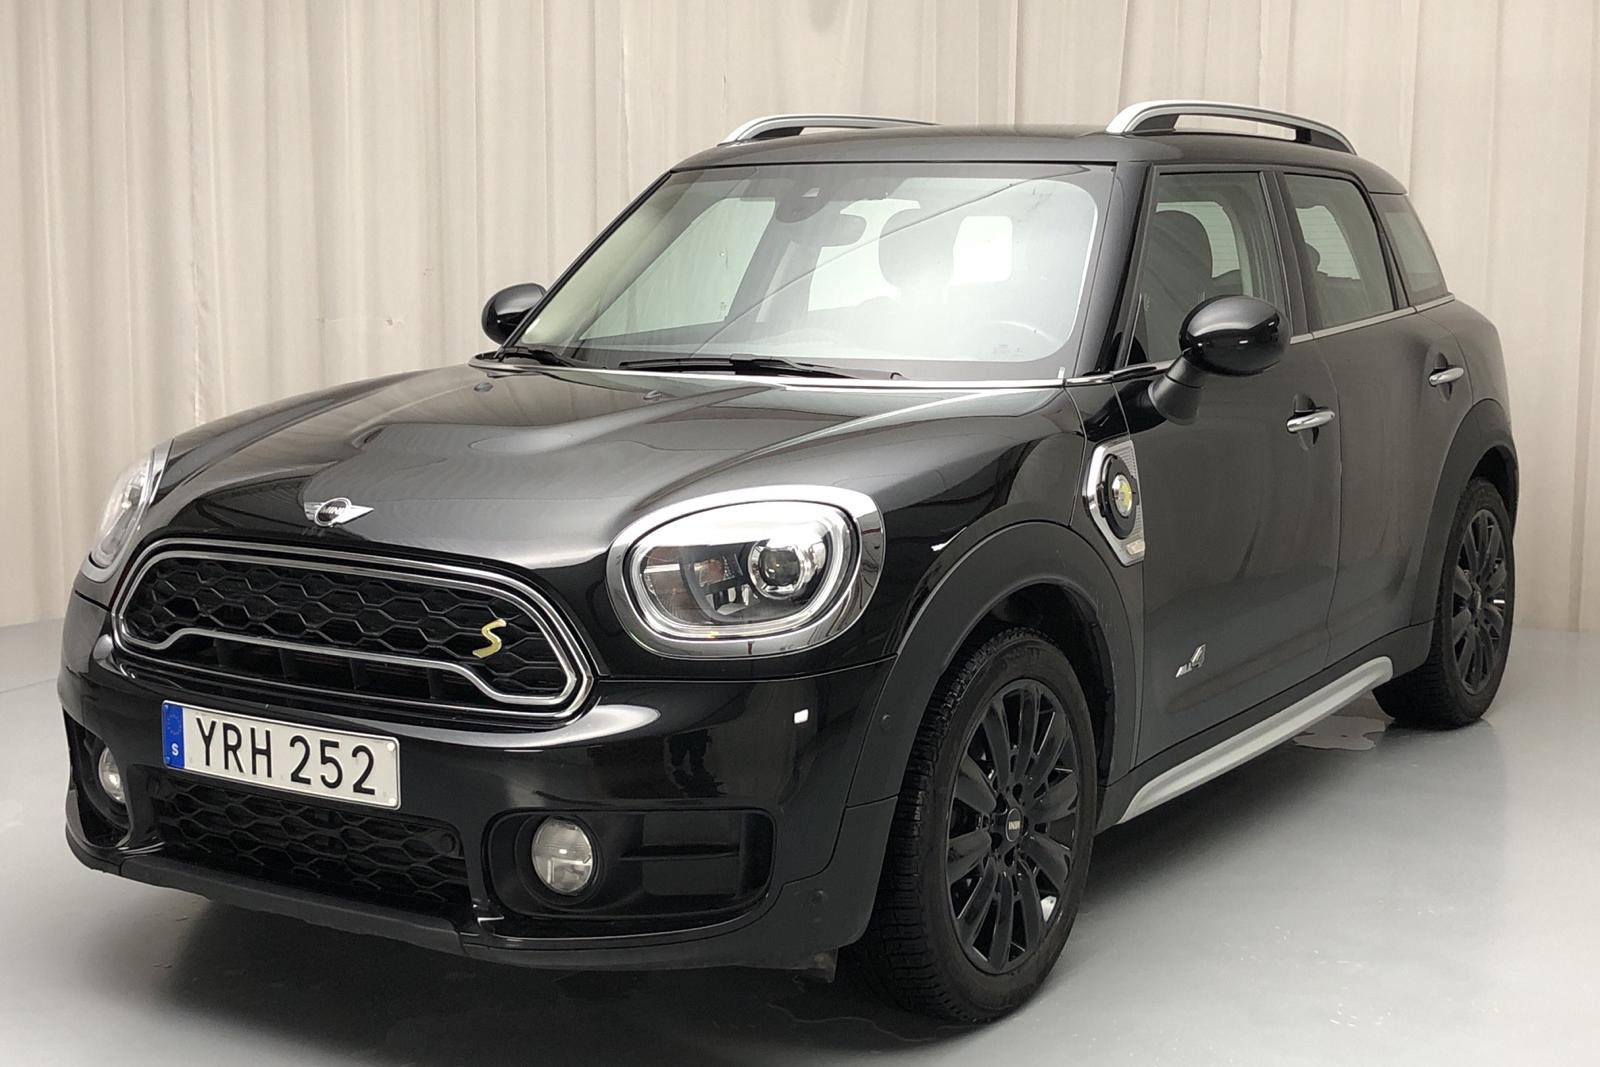 MINI Cooper S E ALL4 Countryman, F60 (224hk) - 4 383 mil - Automat - svart - 2017